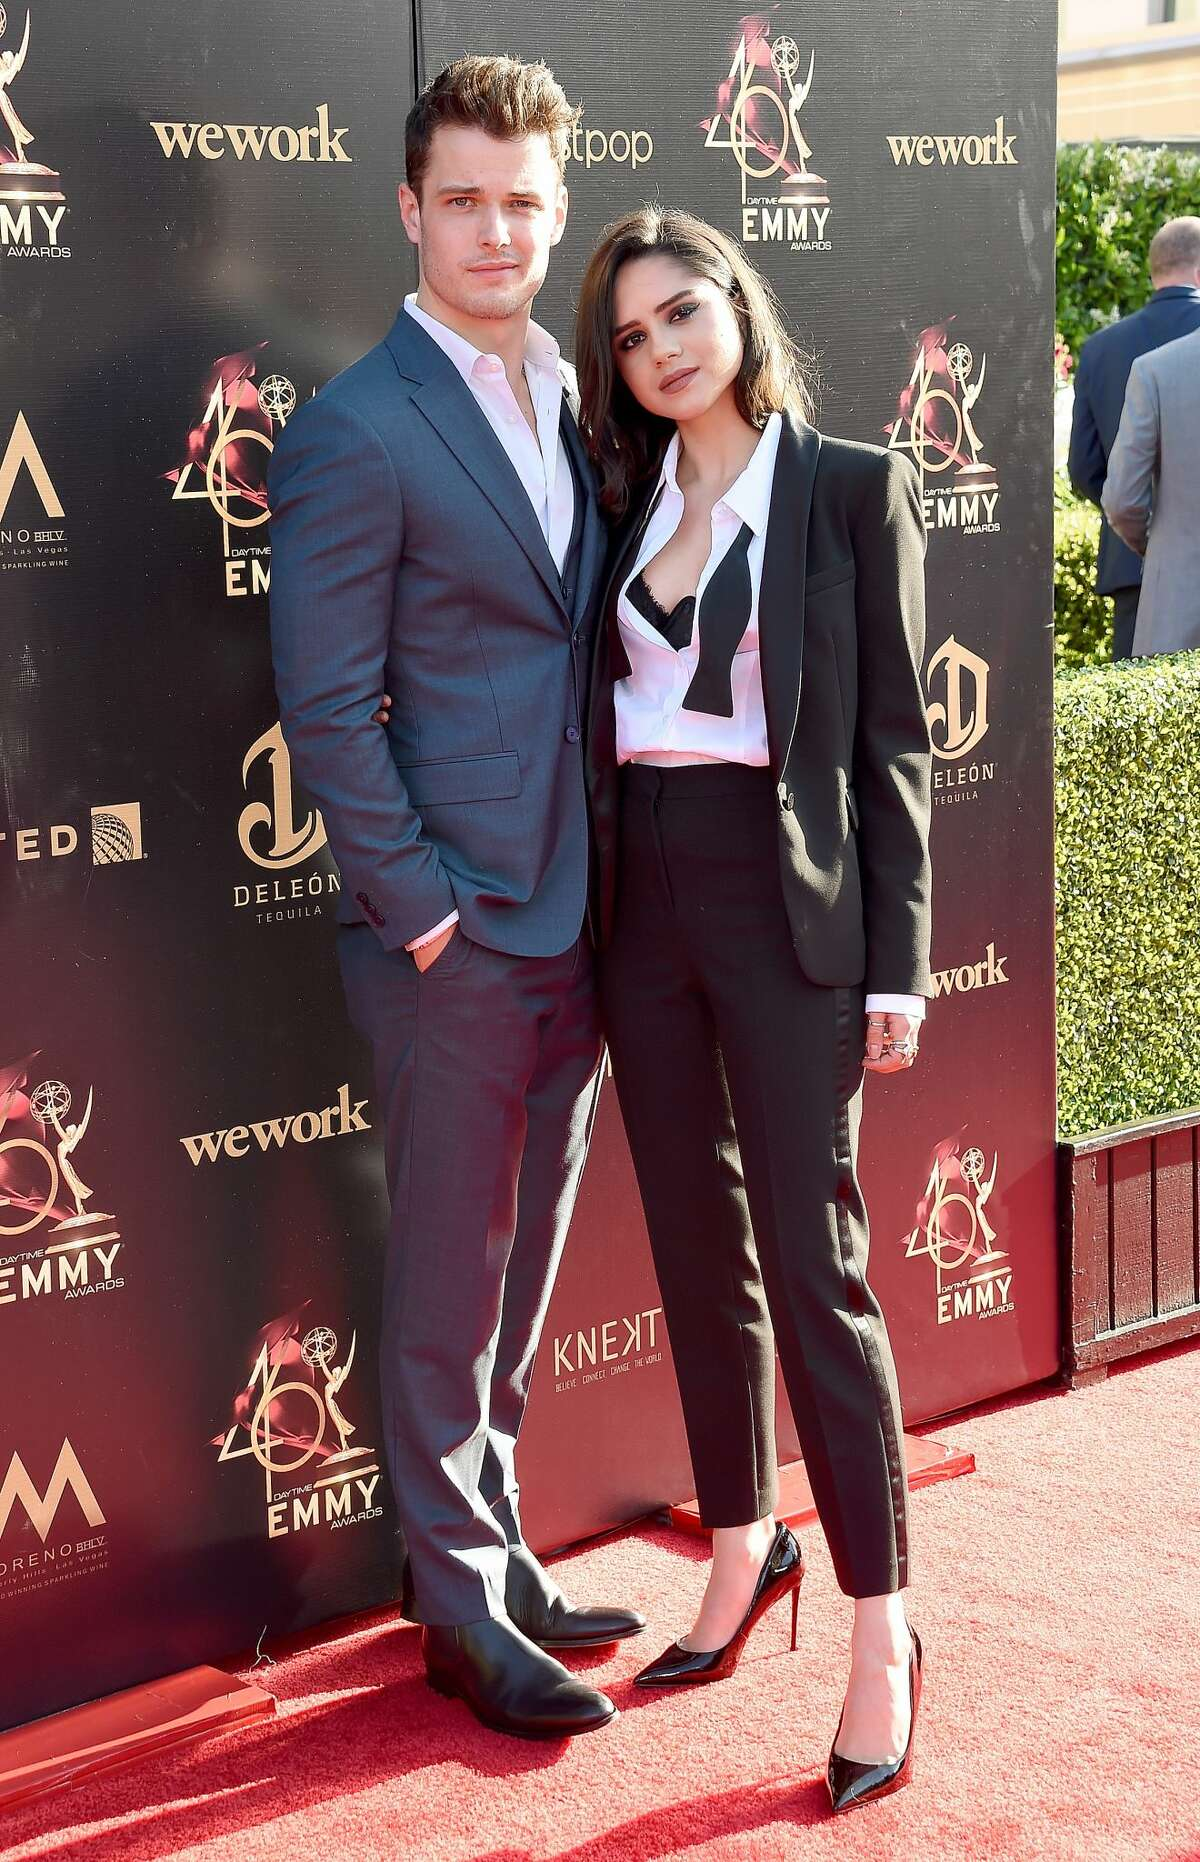 PASADENA, CA - MAY 03: Michael Mealor and Sasha Calle arrive at the 46th Annual Daytime Creative Arts Emmy Awards at Pasadena Civic Center on May 3, 2019 in Pasadena, California. (Photo by Gregg DeGuire/Getty Images)